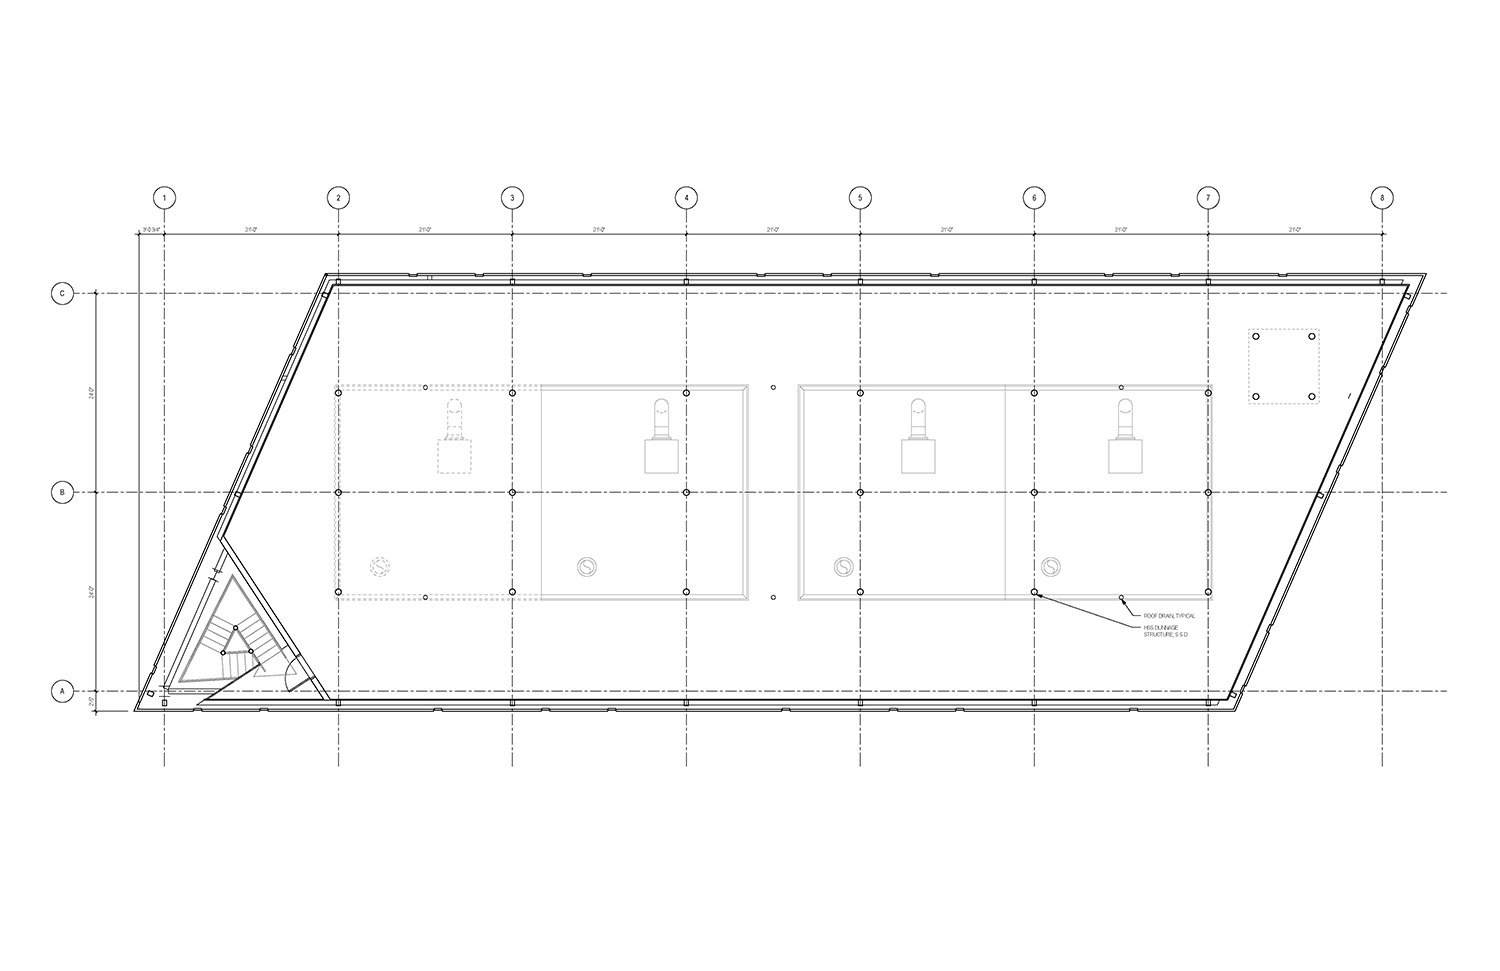 Roof Plan of the UMass Amherst North Chiller Plant Leers Weinzapfel Associates}